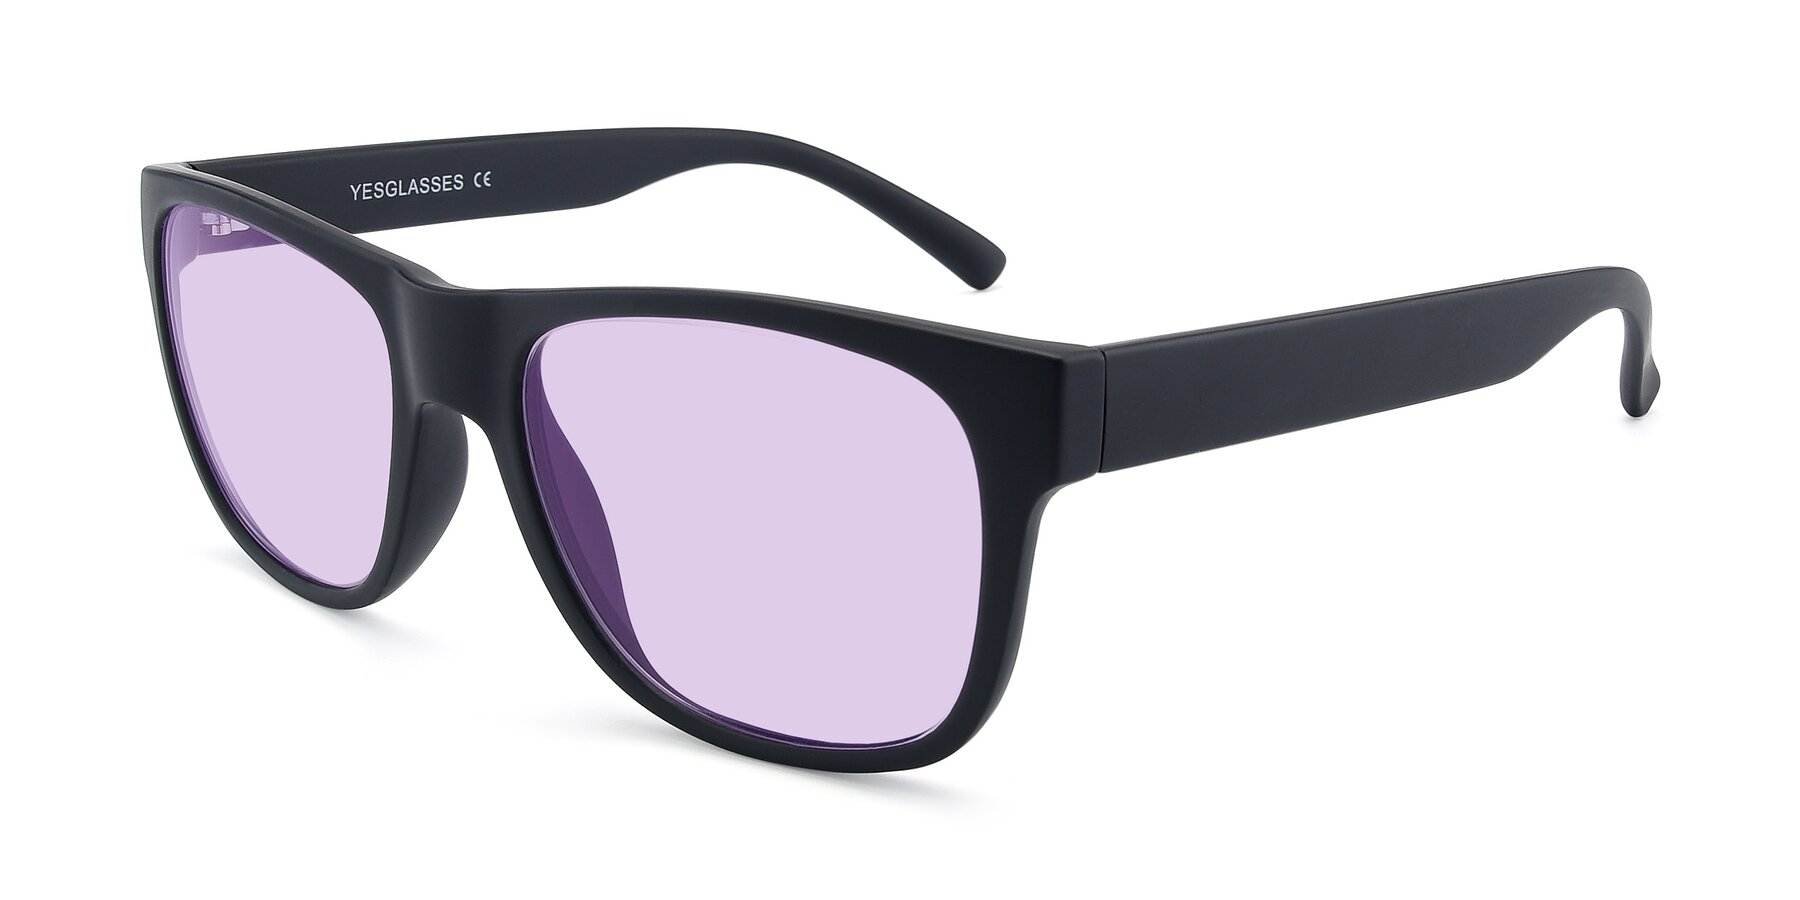 Angle of SSR213 in Matte Black with Light Purple Tinted Lenses